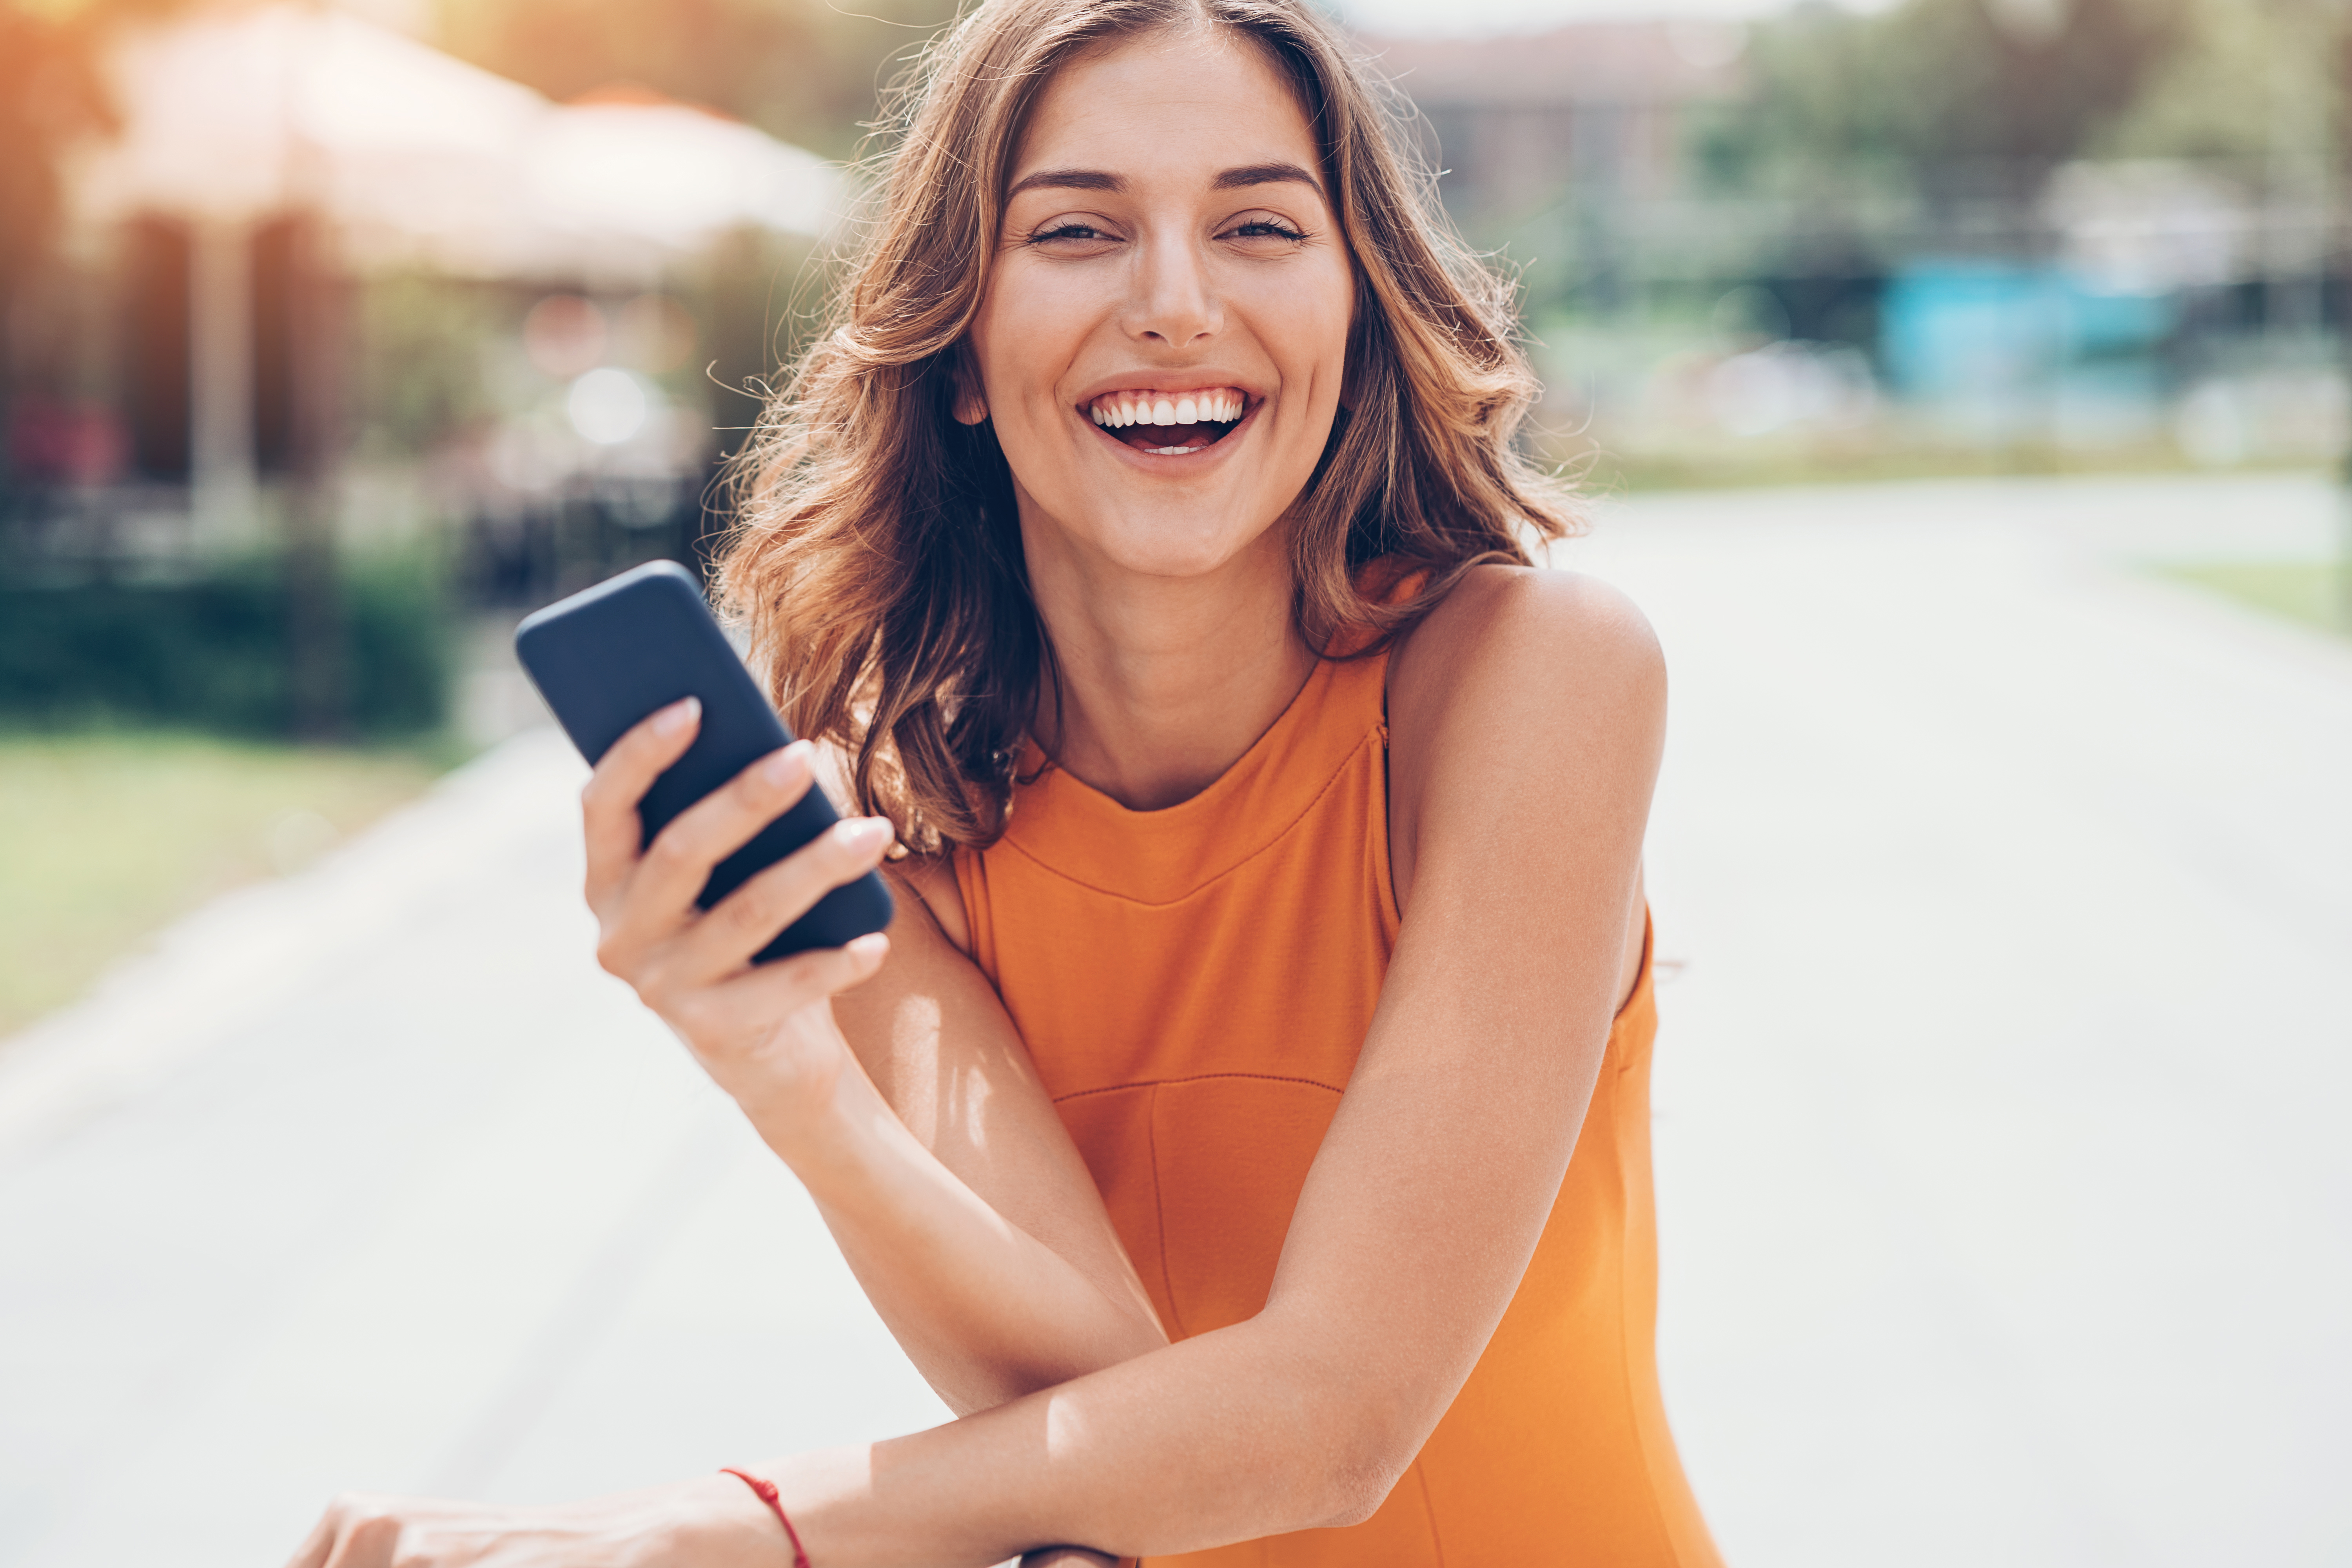 Woman laughing outdoors with phone in hand.